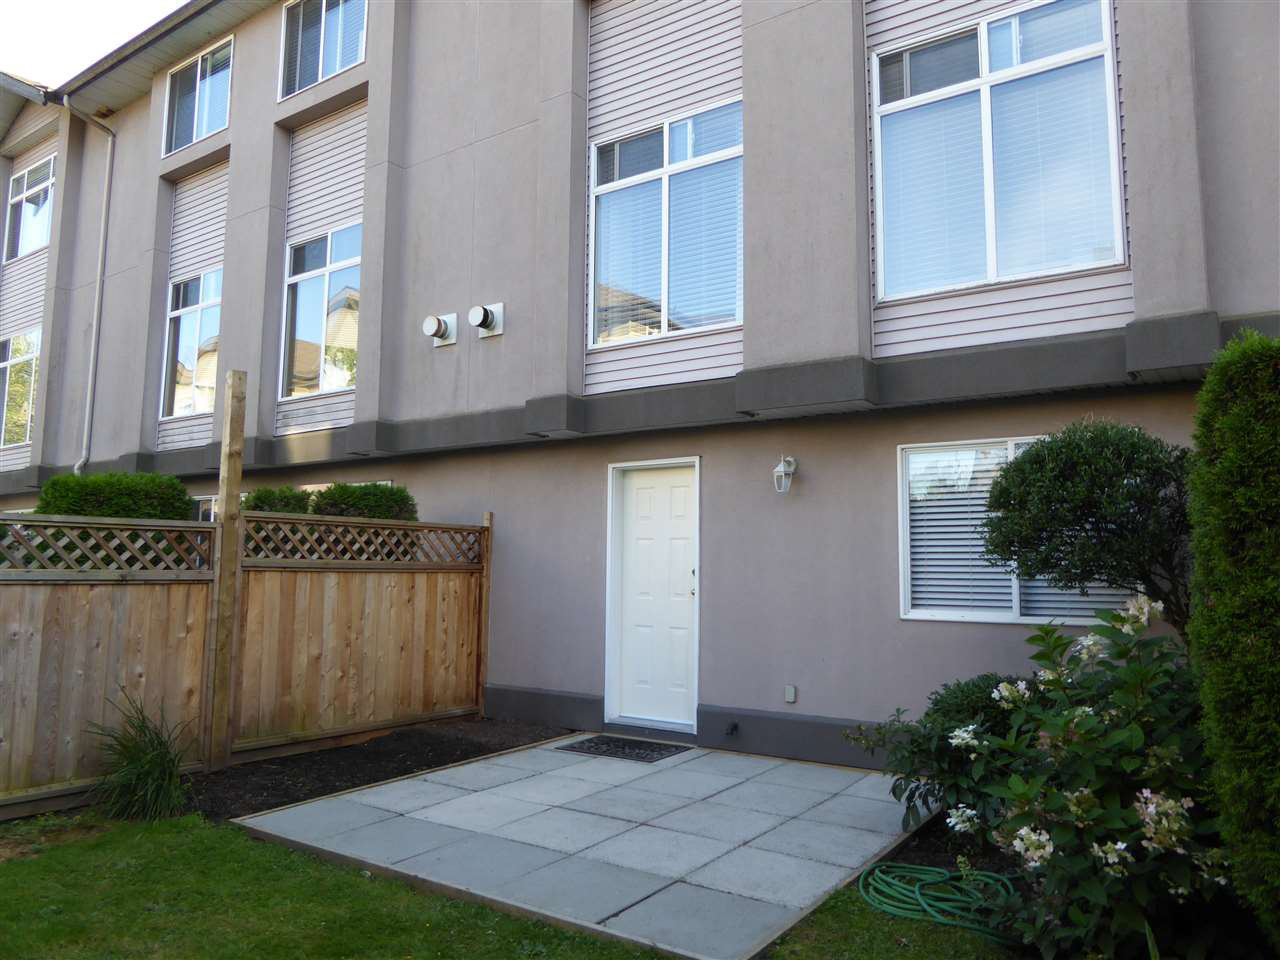 """Photo 17: Photos: 7 2538 PITT RIVER Road in Port Coquitlam: Mary Hill Townhouse for sale in """"RIVER COURT"""" : MLS®# R2392778"""